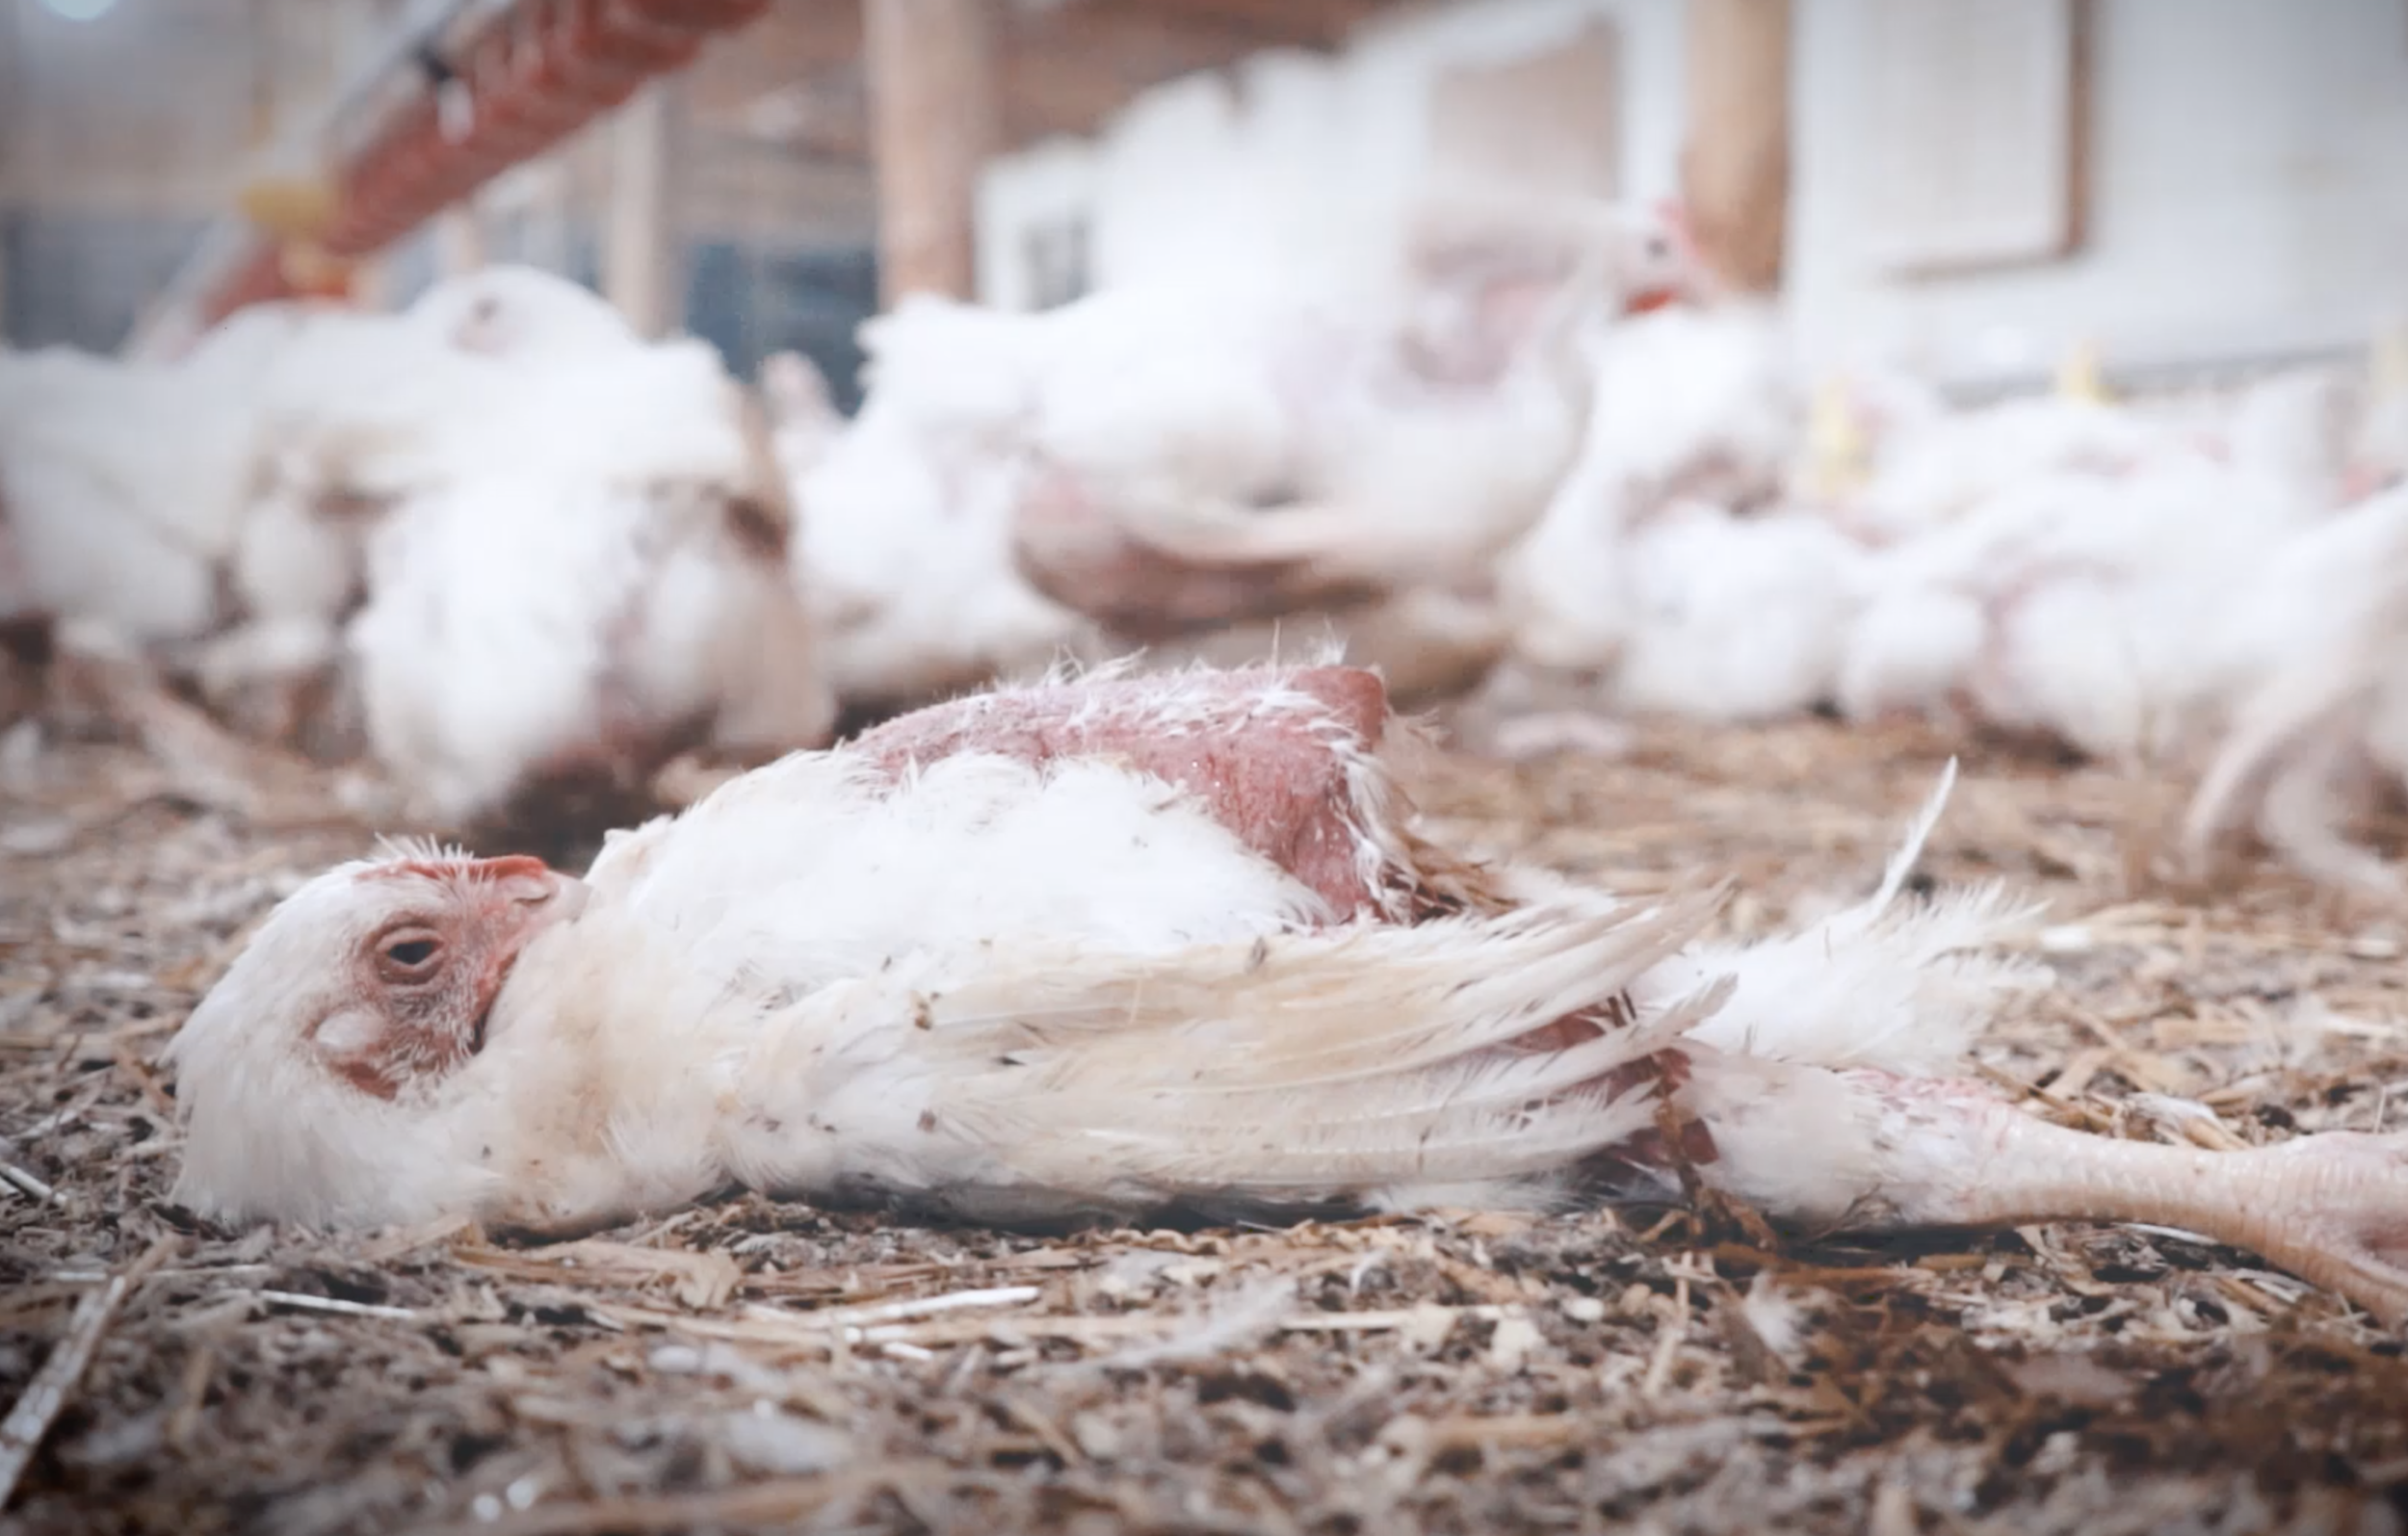 """THIS IS NOT JUST FOOD, THIS IS M&S FOOD."" - Marks & Spencer chicken farming exposed"